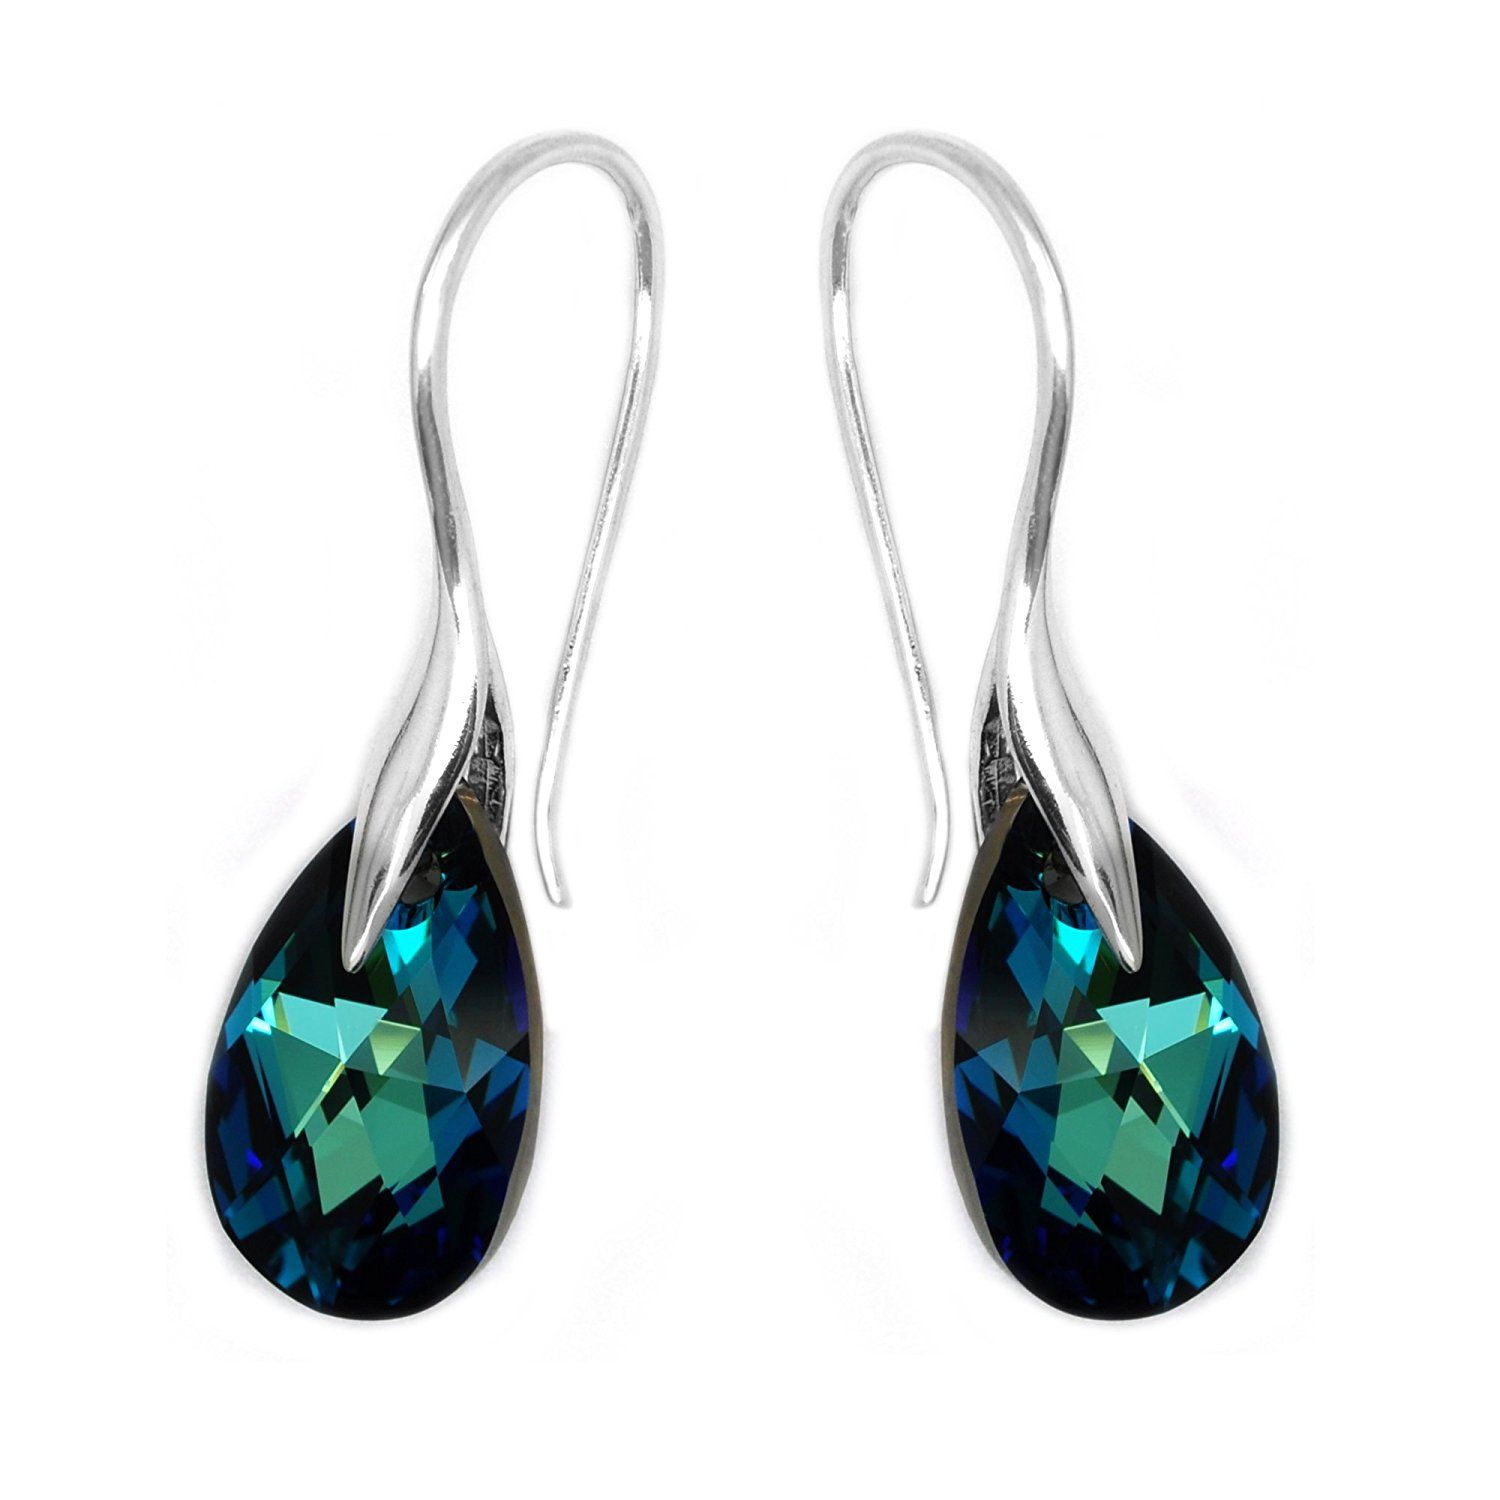 Sterling Silver 925 Blue Made with Swarovski Crystals Drop Hook Pierced Earrings >>> Click image to review more details. (This is an affiliate link and I receive a commission for the sales)